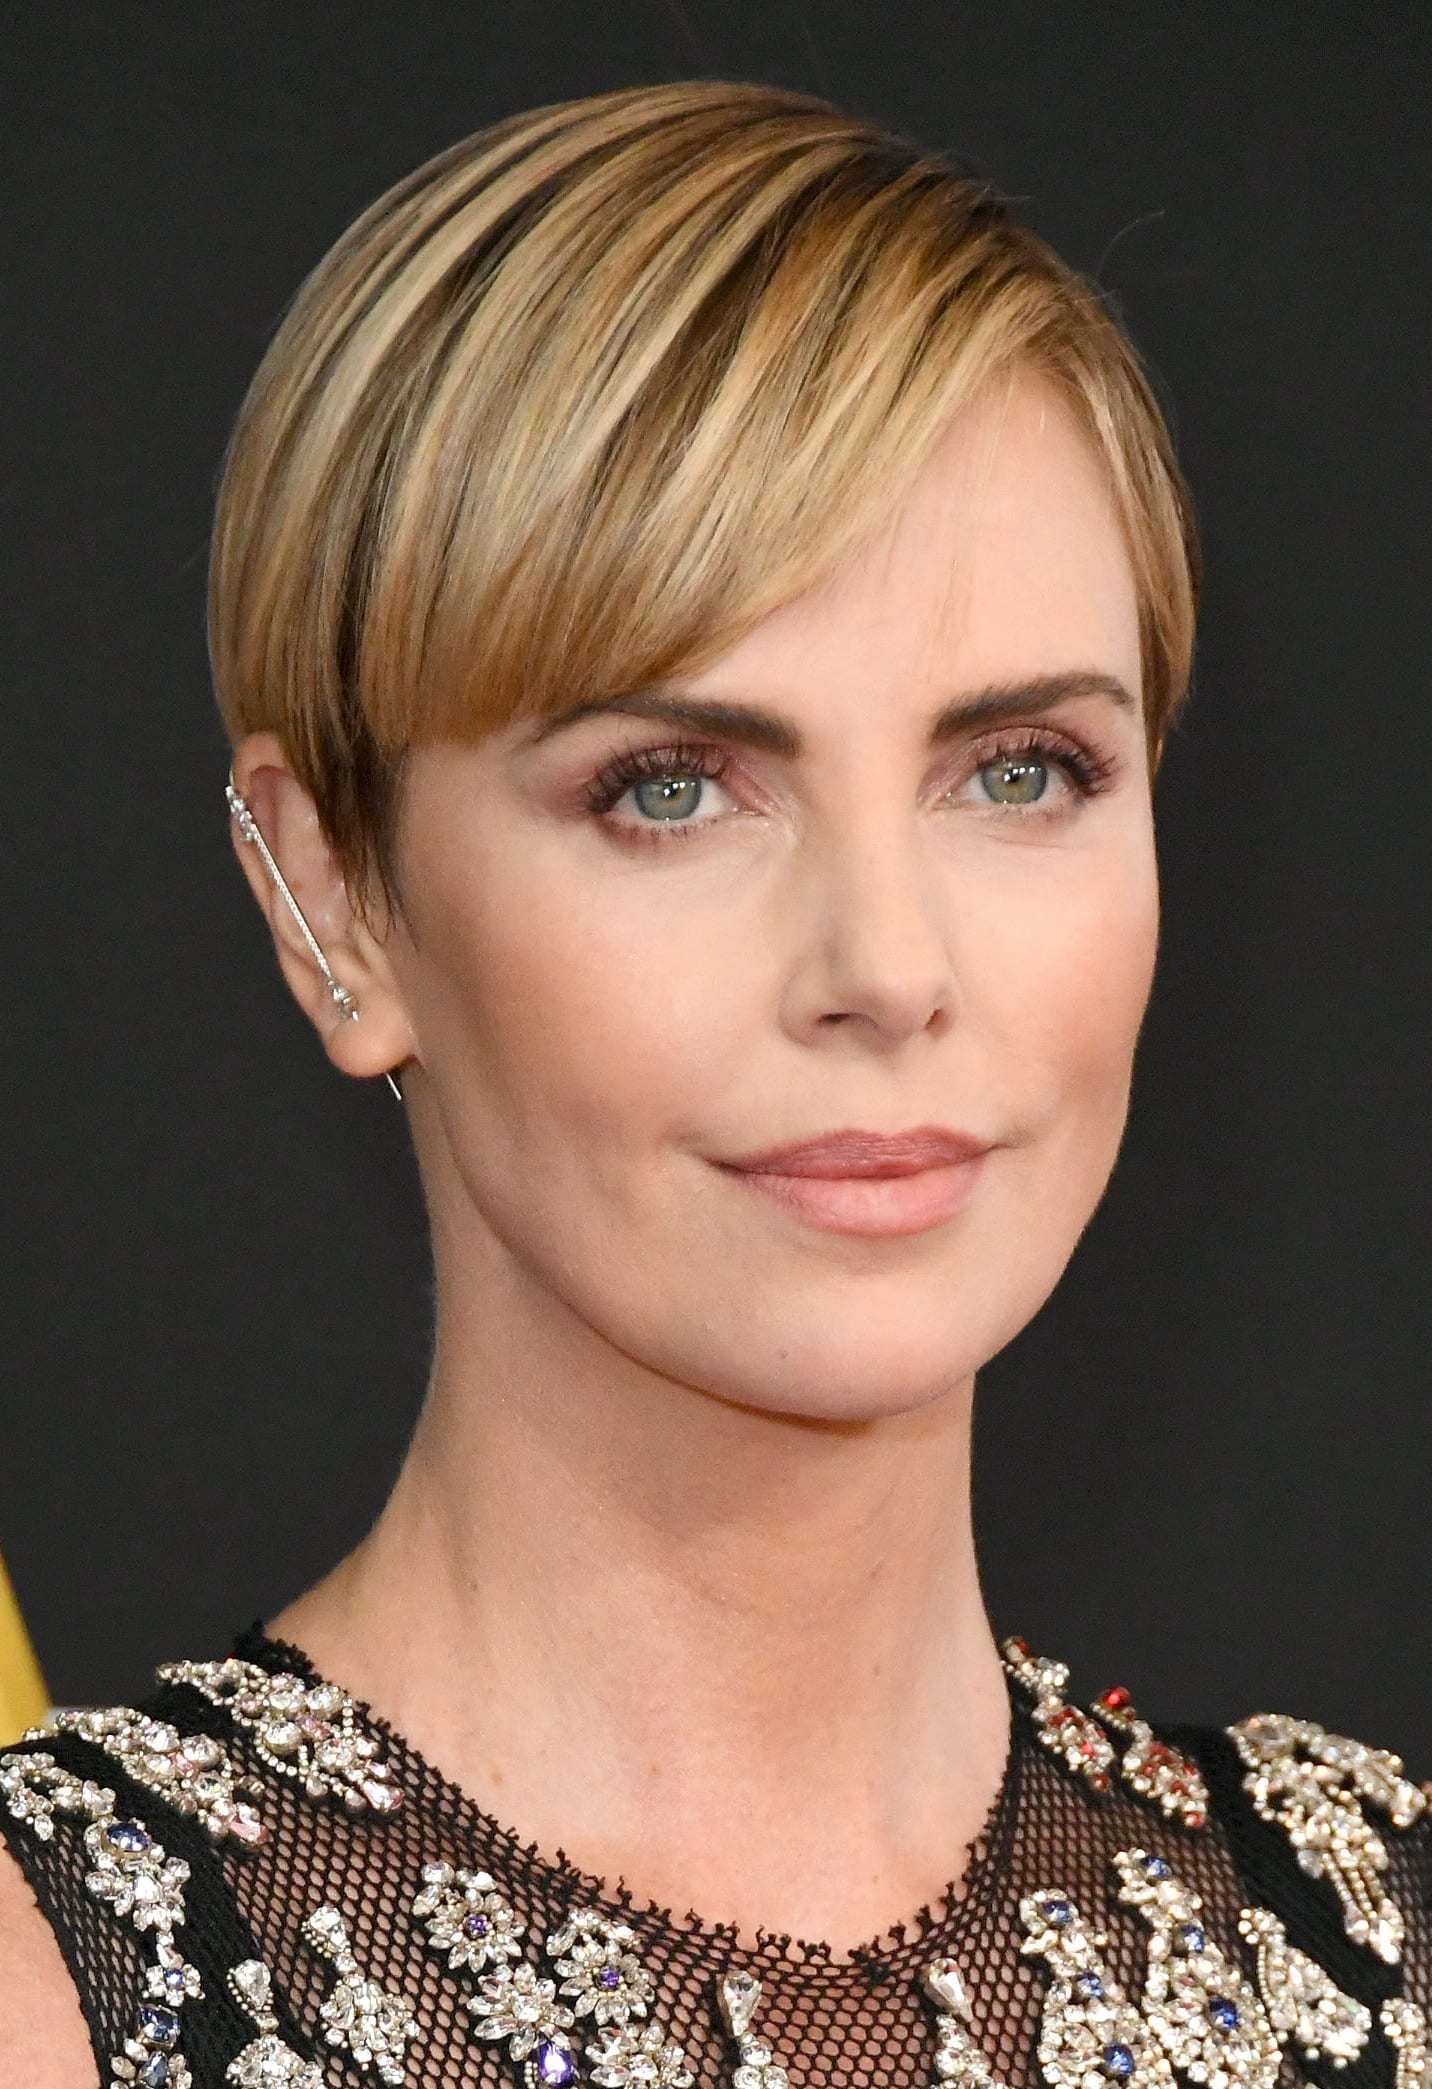 Charlize Theron's Highlight and Pixie